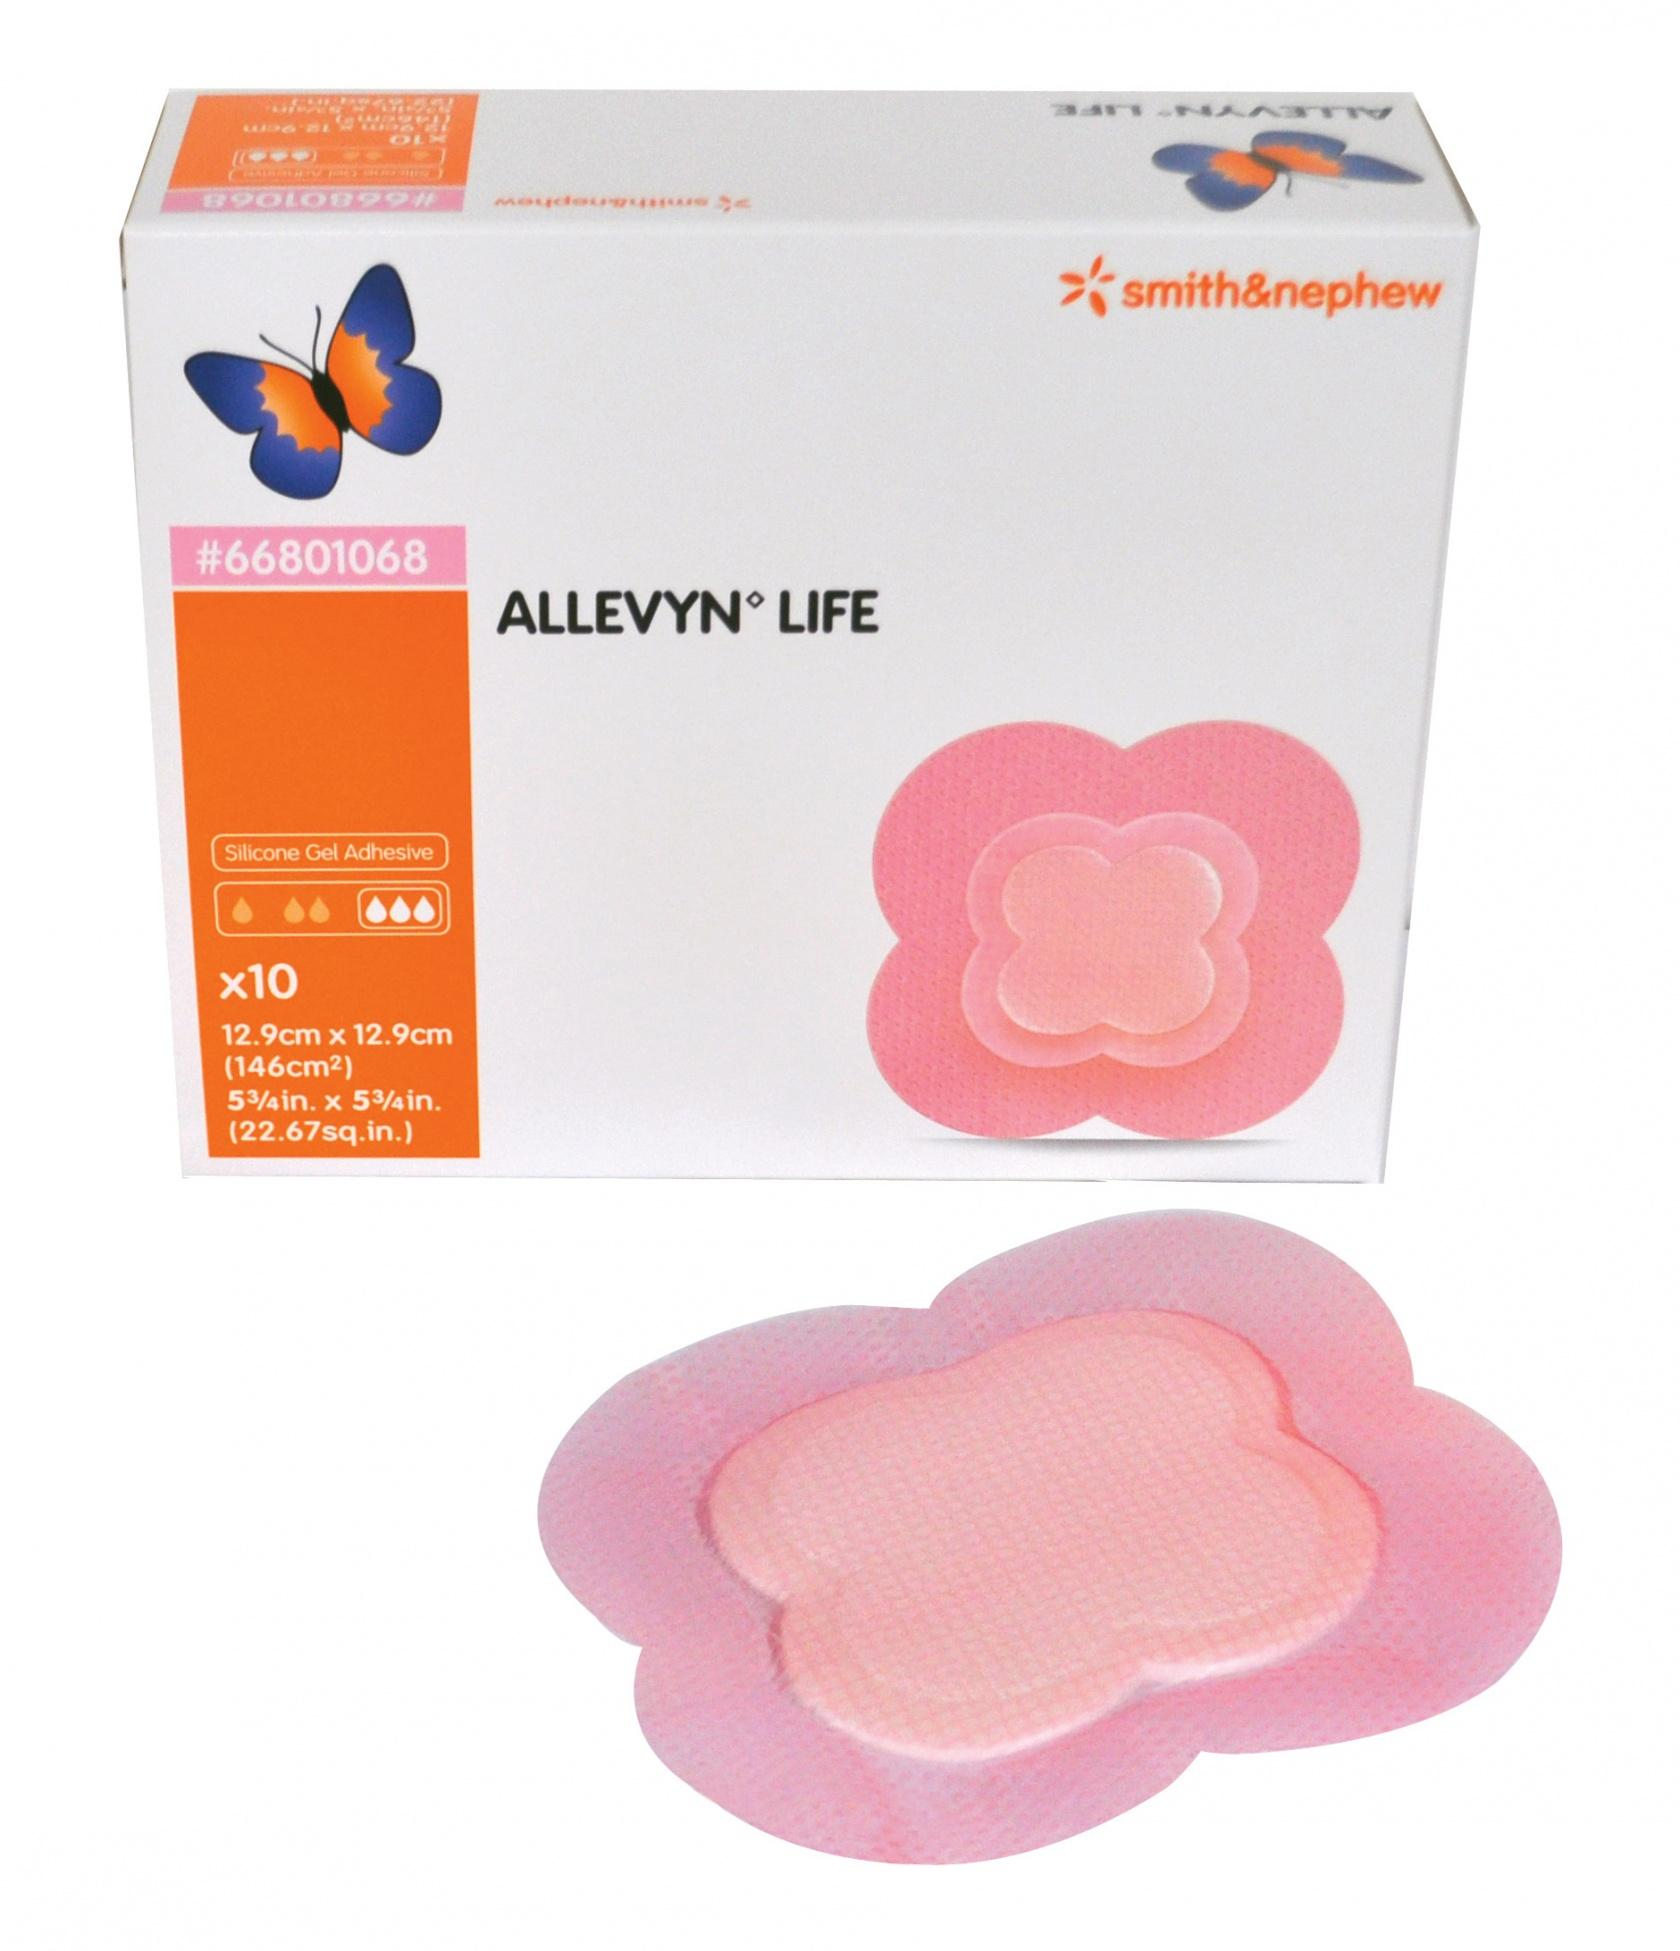 ALLEVYN LIFE MEDIUM 12.9CMx12.9CM, BOX 10